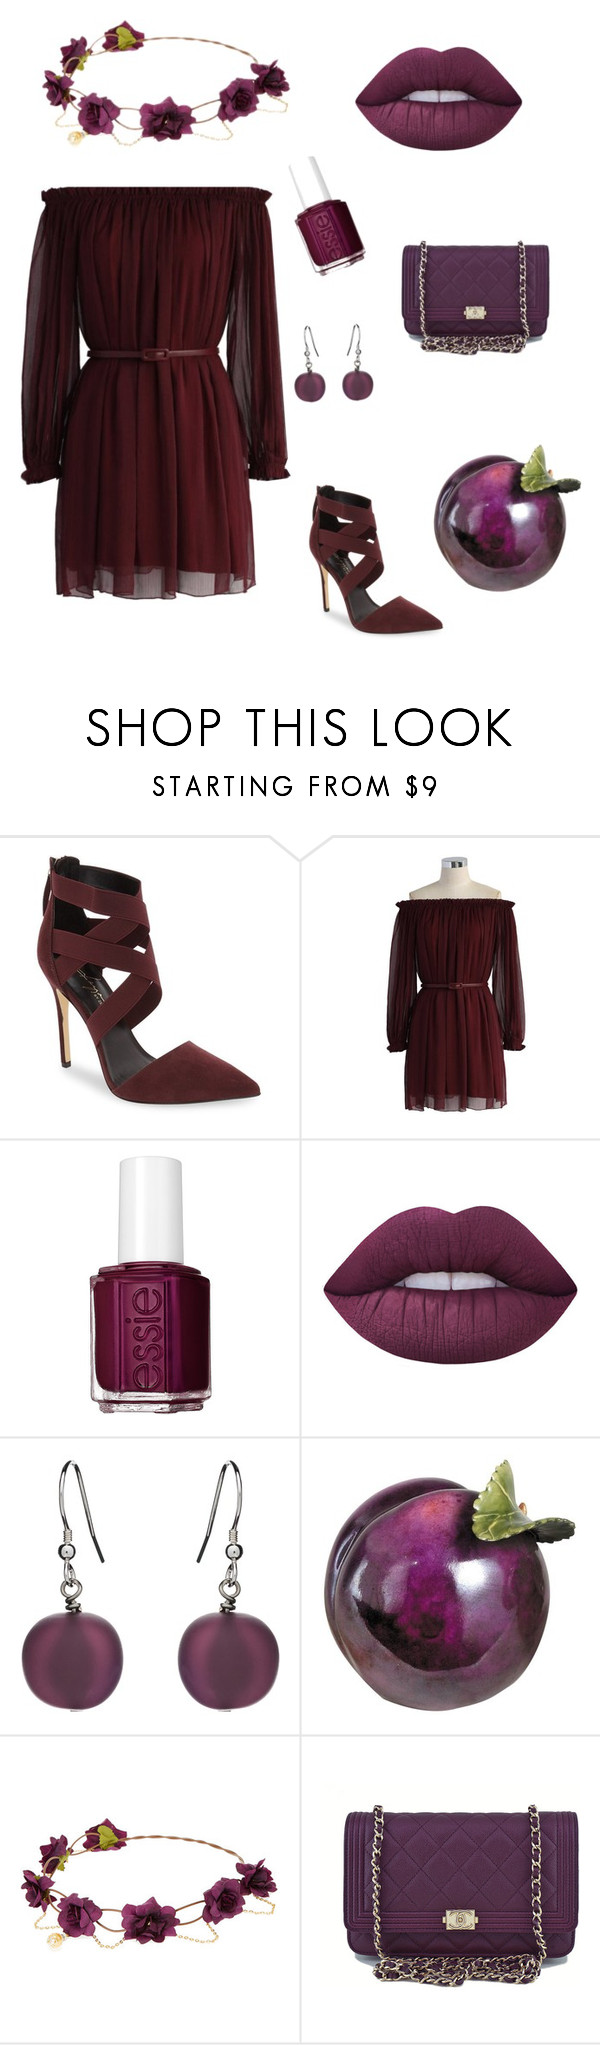 """""""Plum and Wine"""" by tigerstripes ❤ liked on Polyvore featuring Daya, Chicwish, Essie, Lime Crime, Martick and Chanel"""